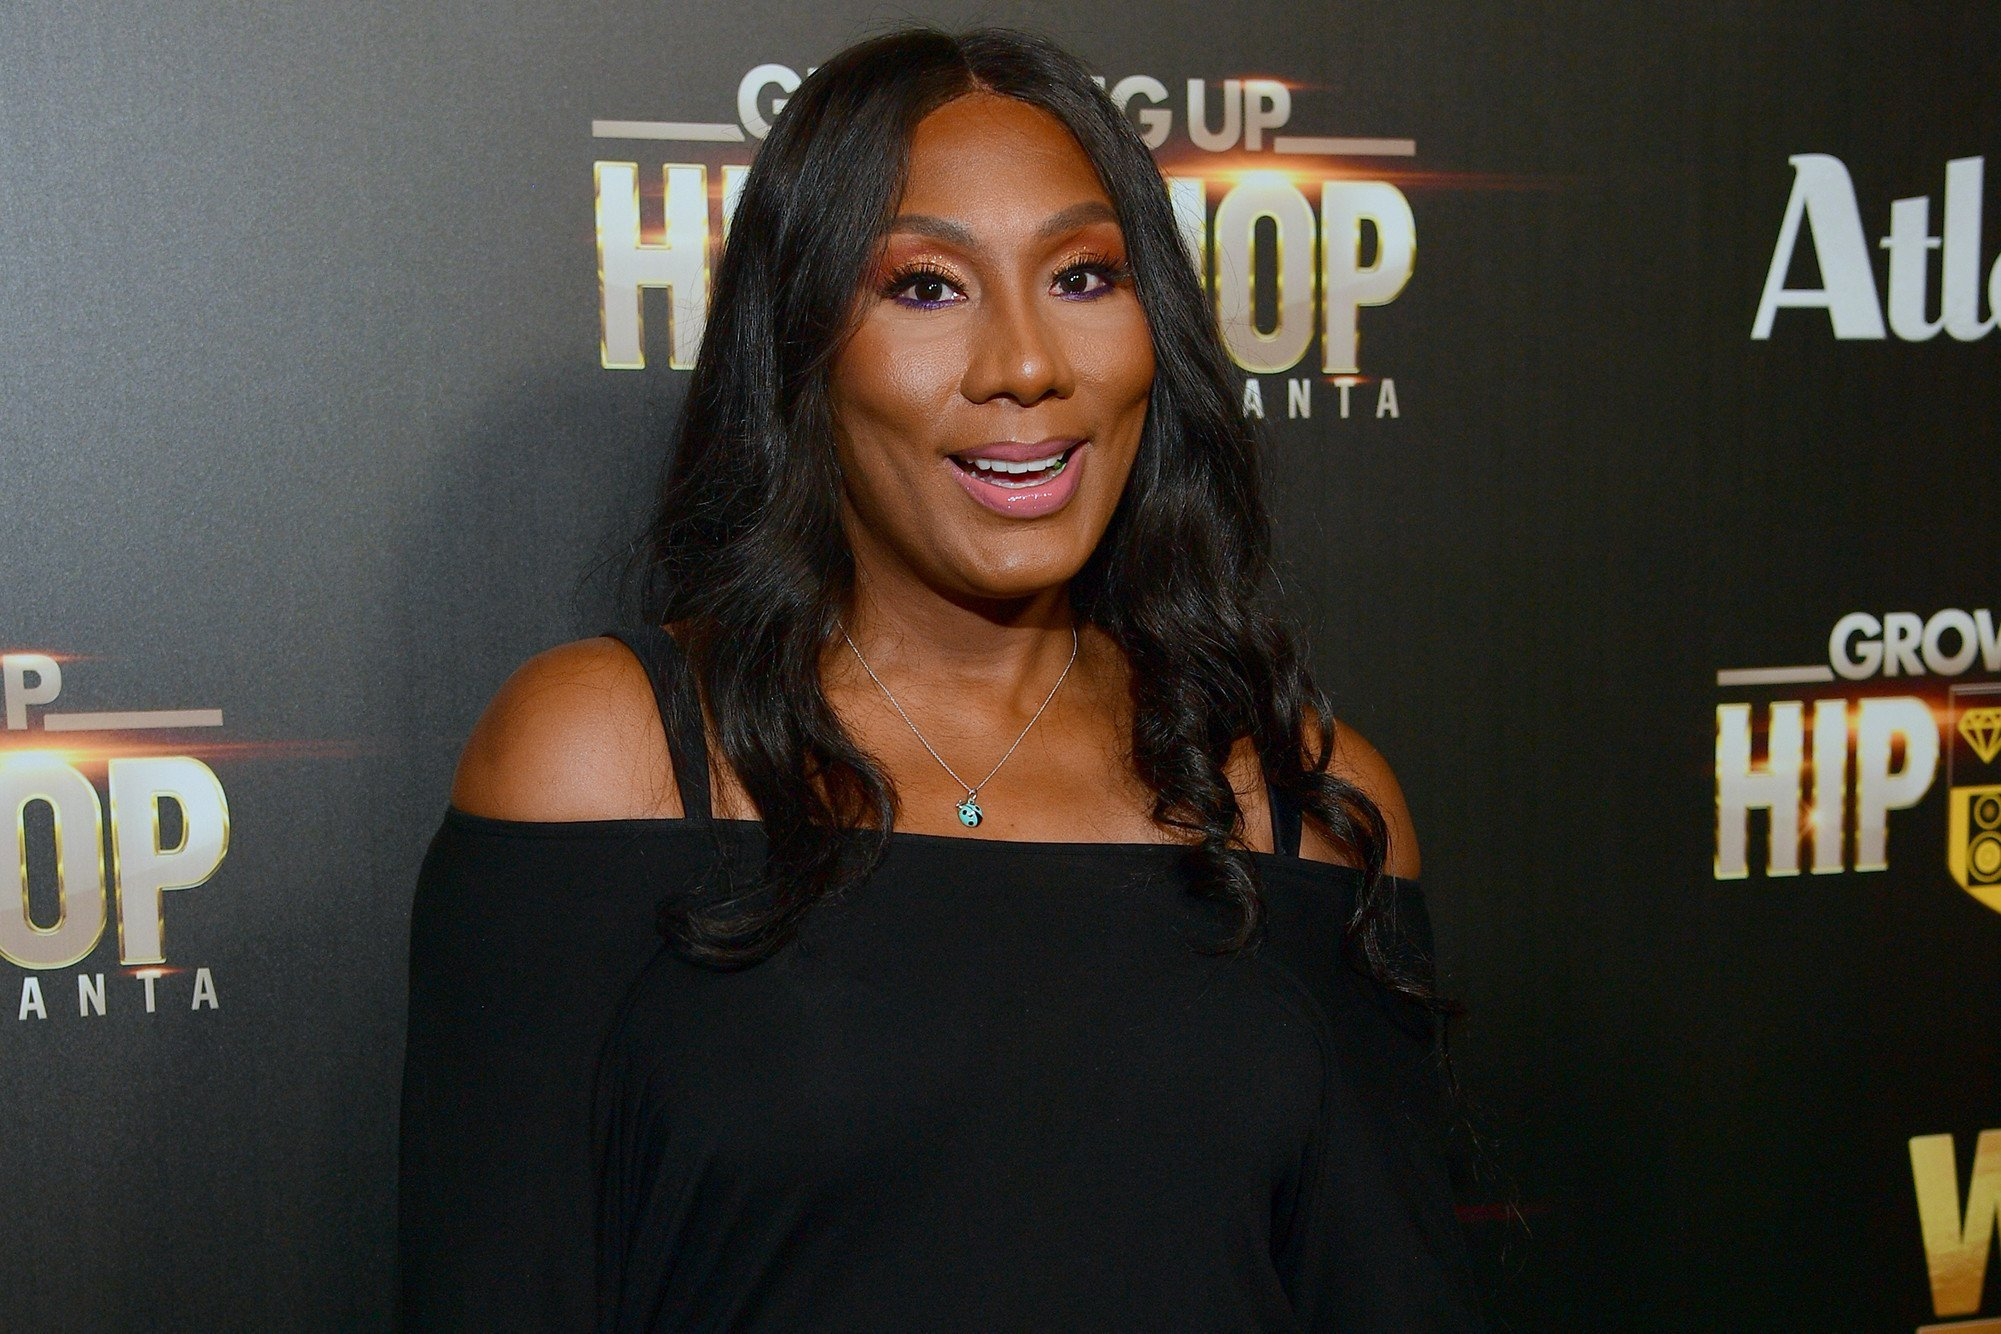 Towanda Braxton Wishes A Happy Birthday To Her Son – See The Funny Clips She Shared To Mark The Event